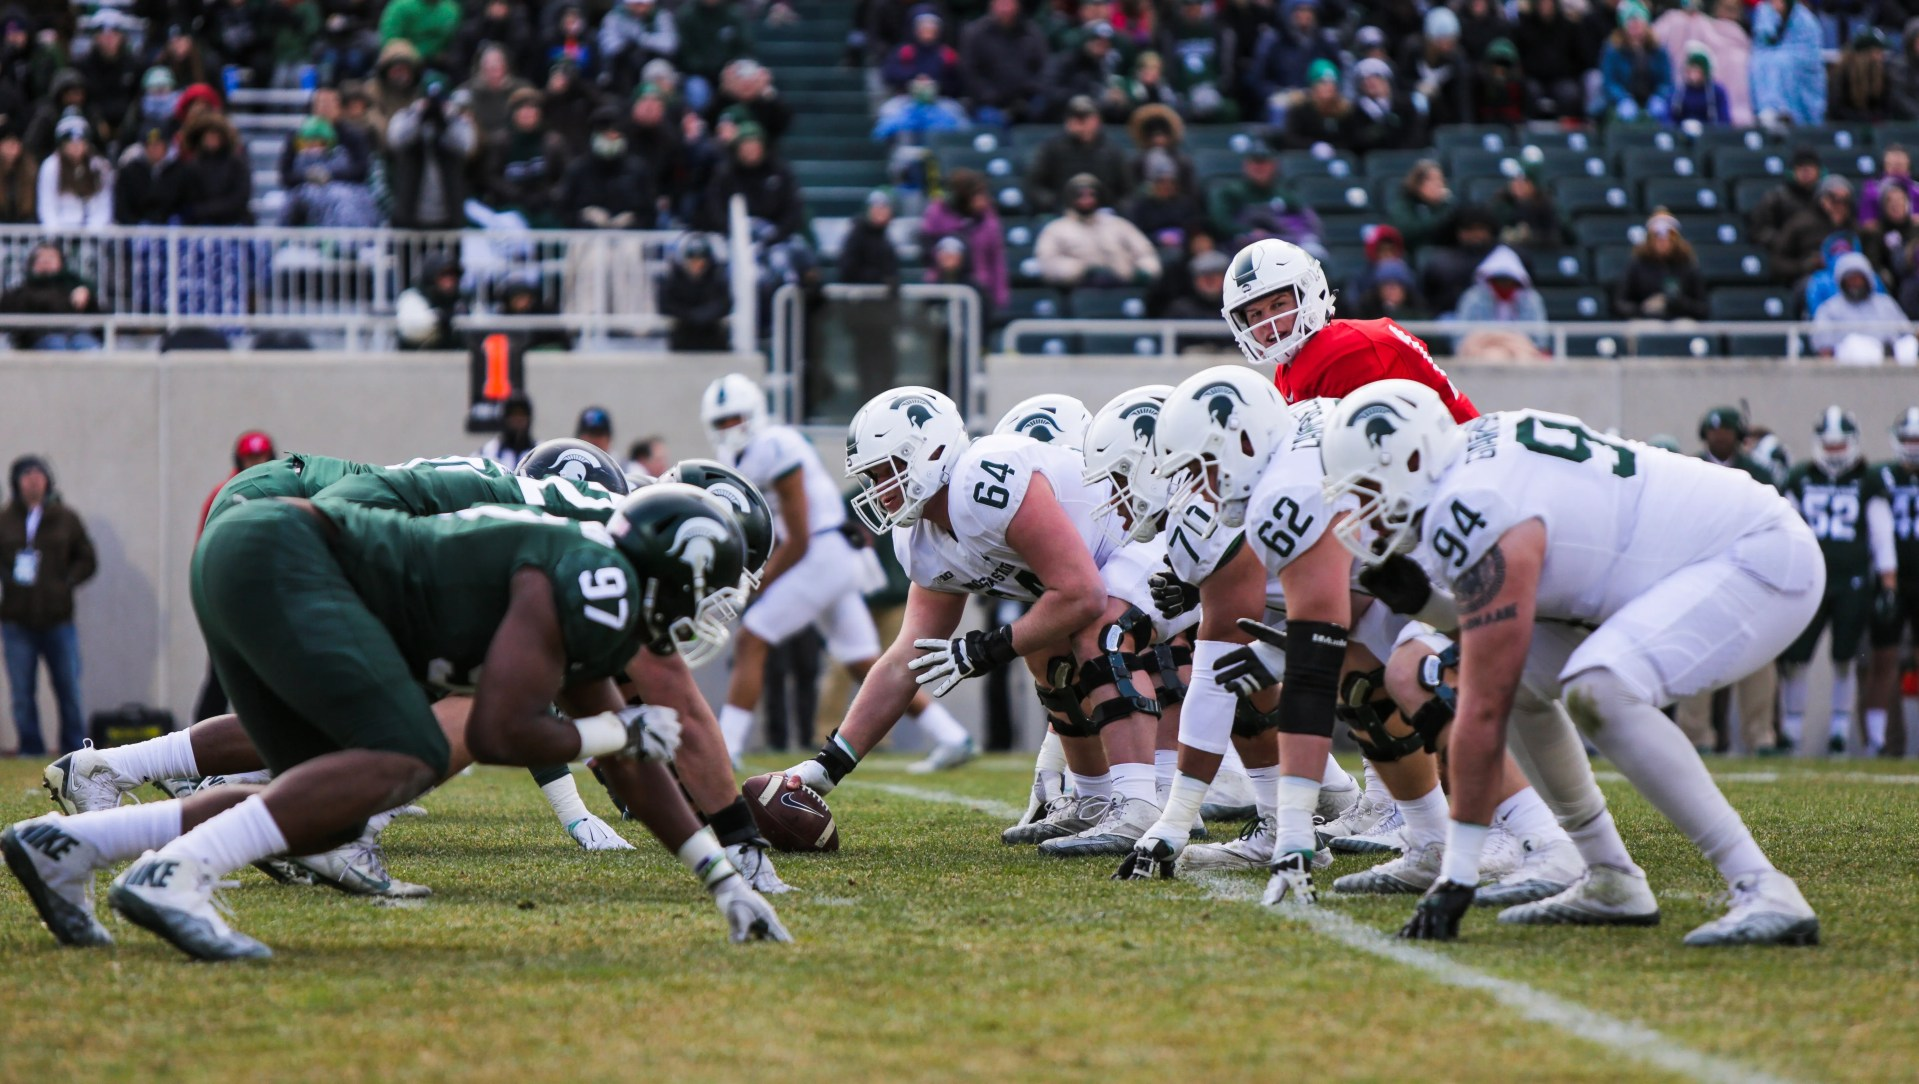 Michigan State football: Defense wins another scrimmage